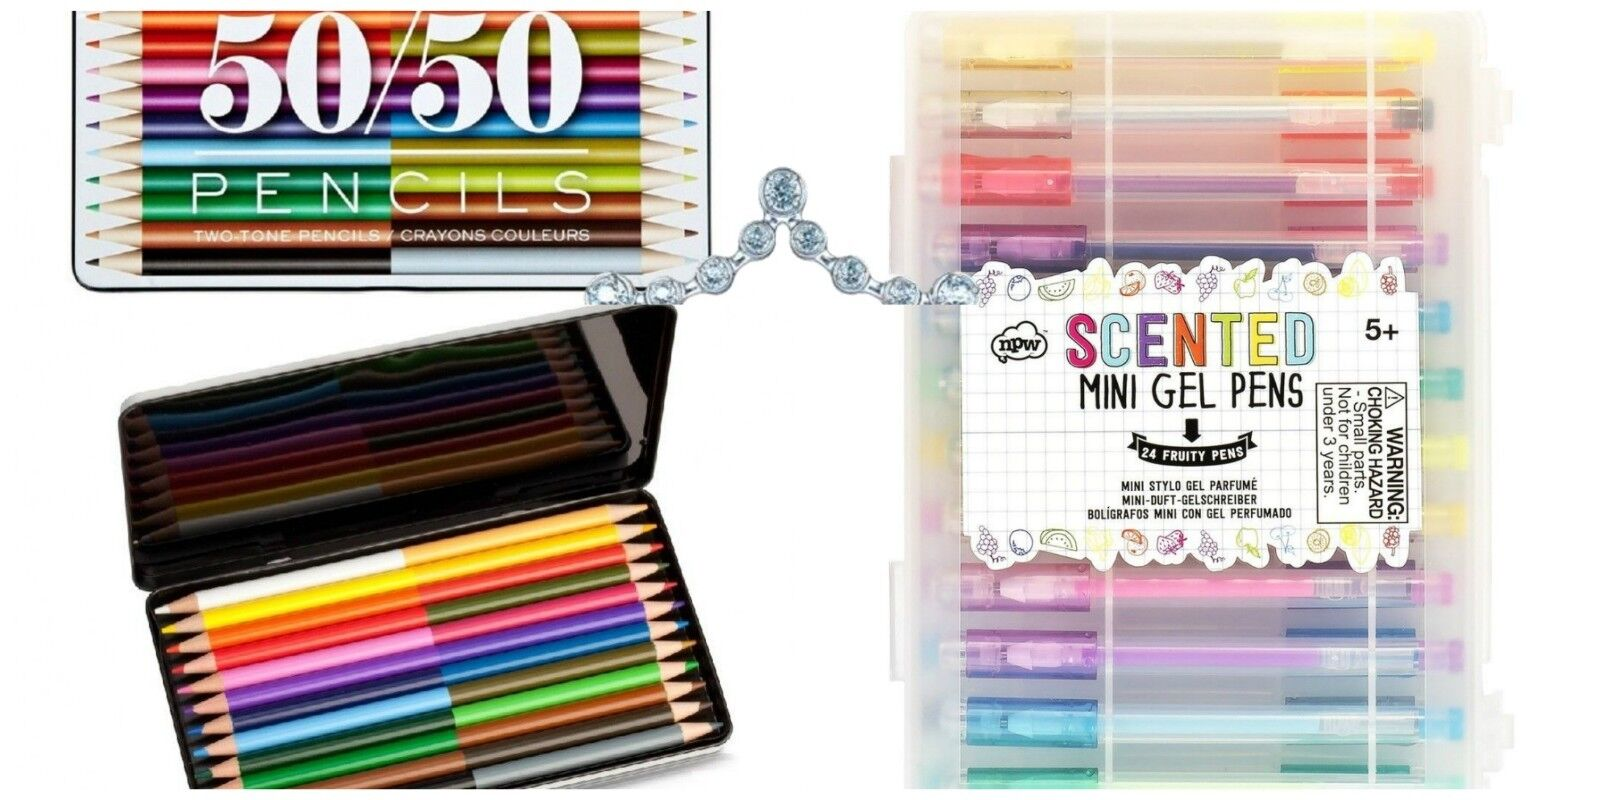 NPW Two Toned Colored Pencils OR 12pk Scented Gel Pens 24pk